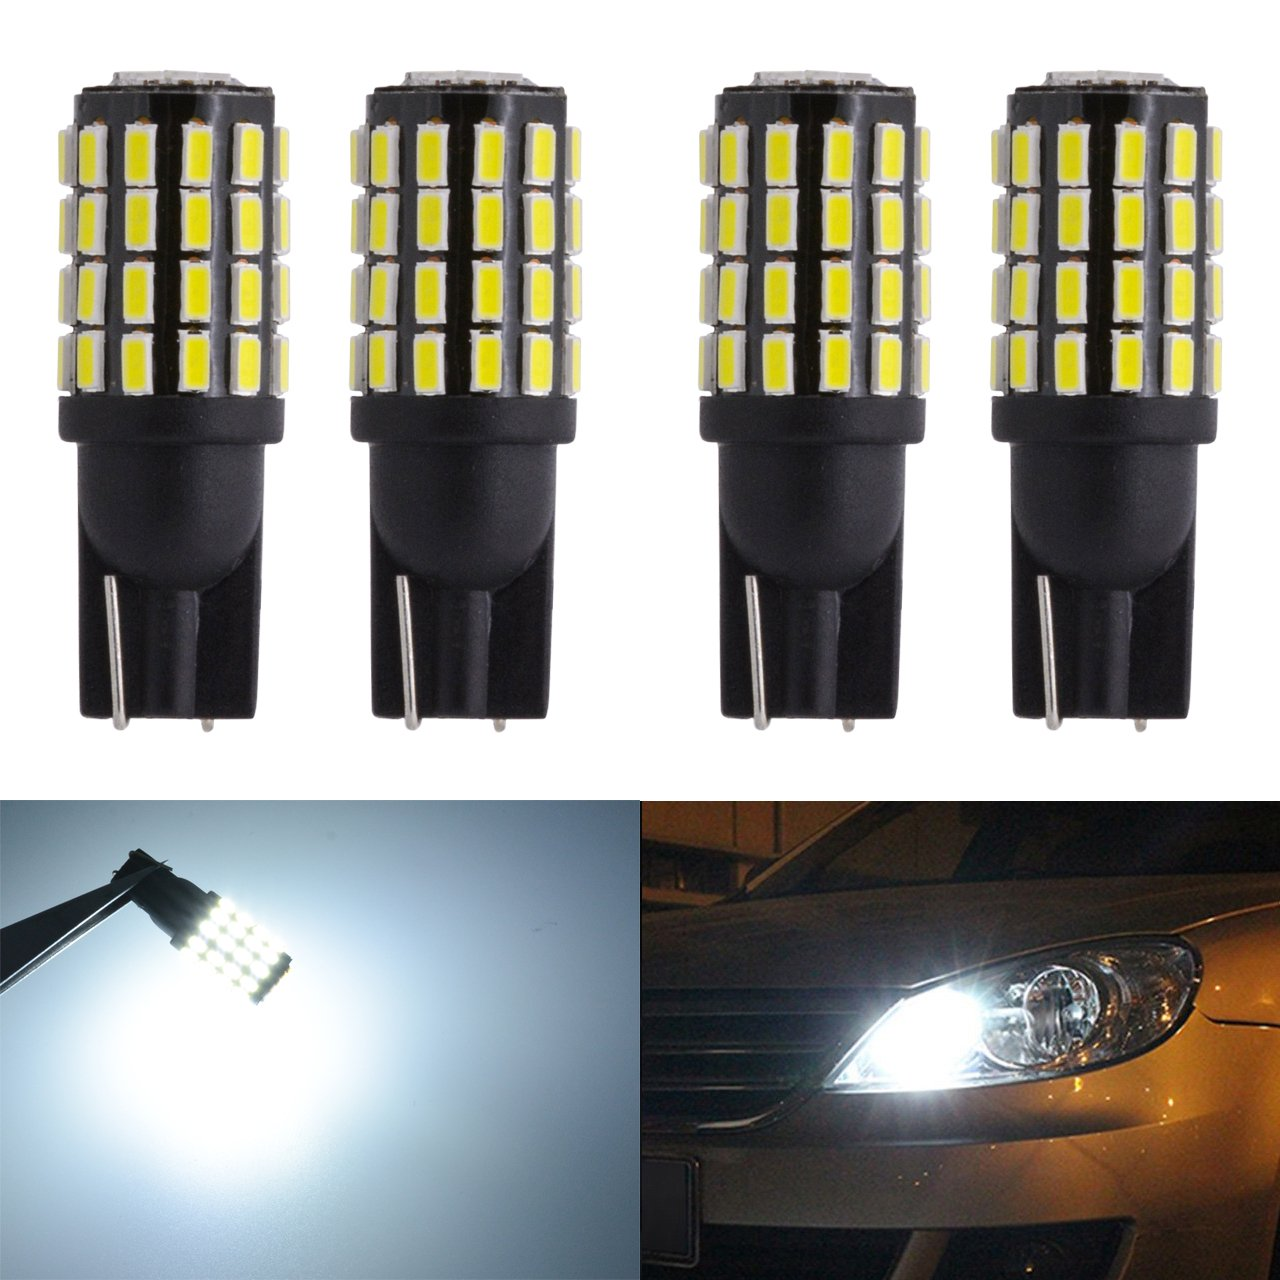 KaTur 4pcs Extremely Bright 800 Lumens High Power T10 168 175 194 2825 W5W 3014 Chipsets 54SMD LED Bulbs Front Rear Sidemarker Light Bulbs License Plate Parking Tail Back Up Light 12V-24V Xenon White